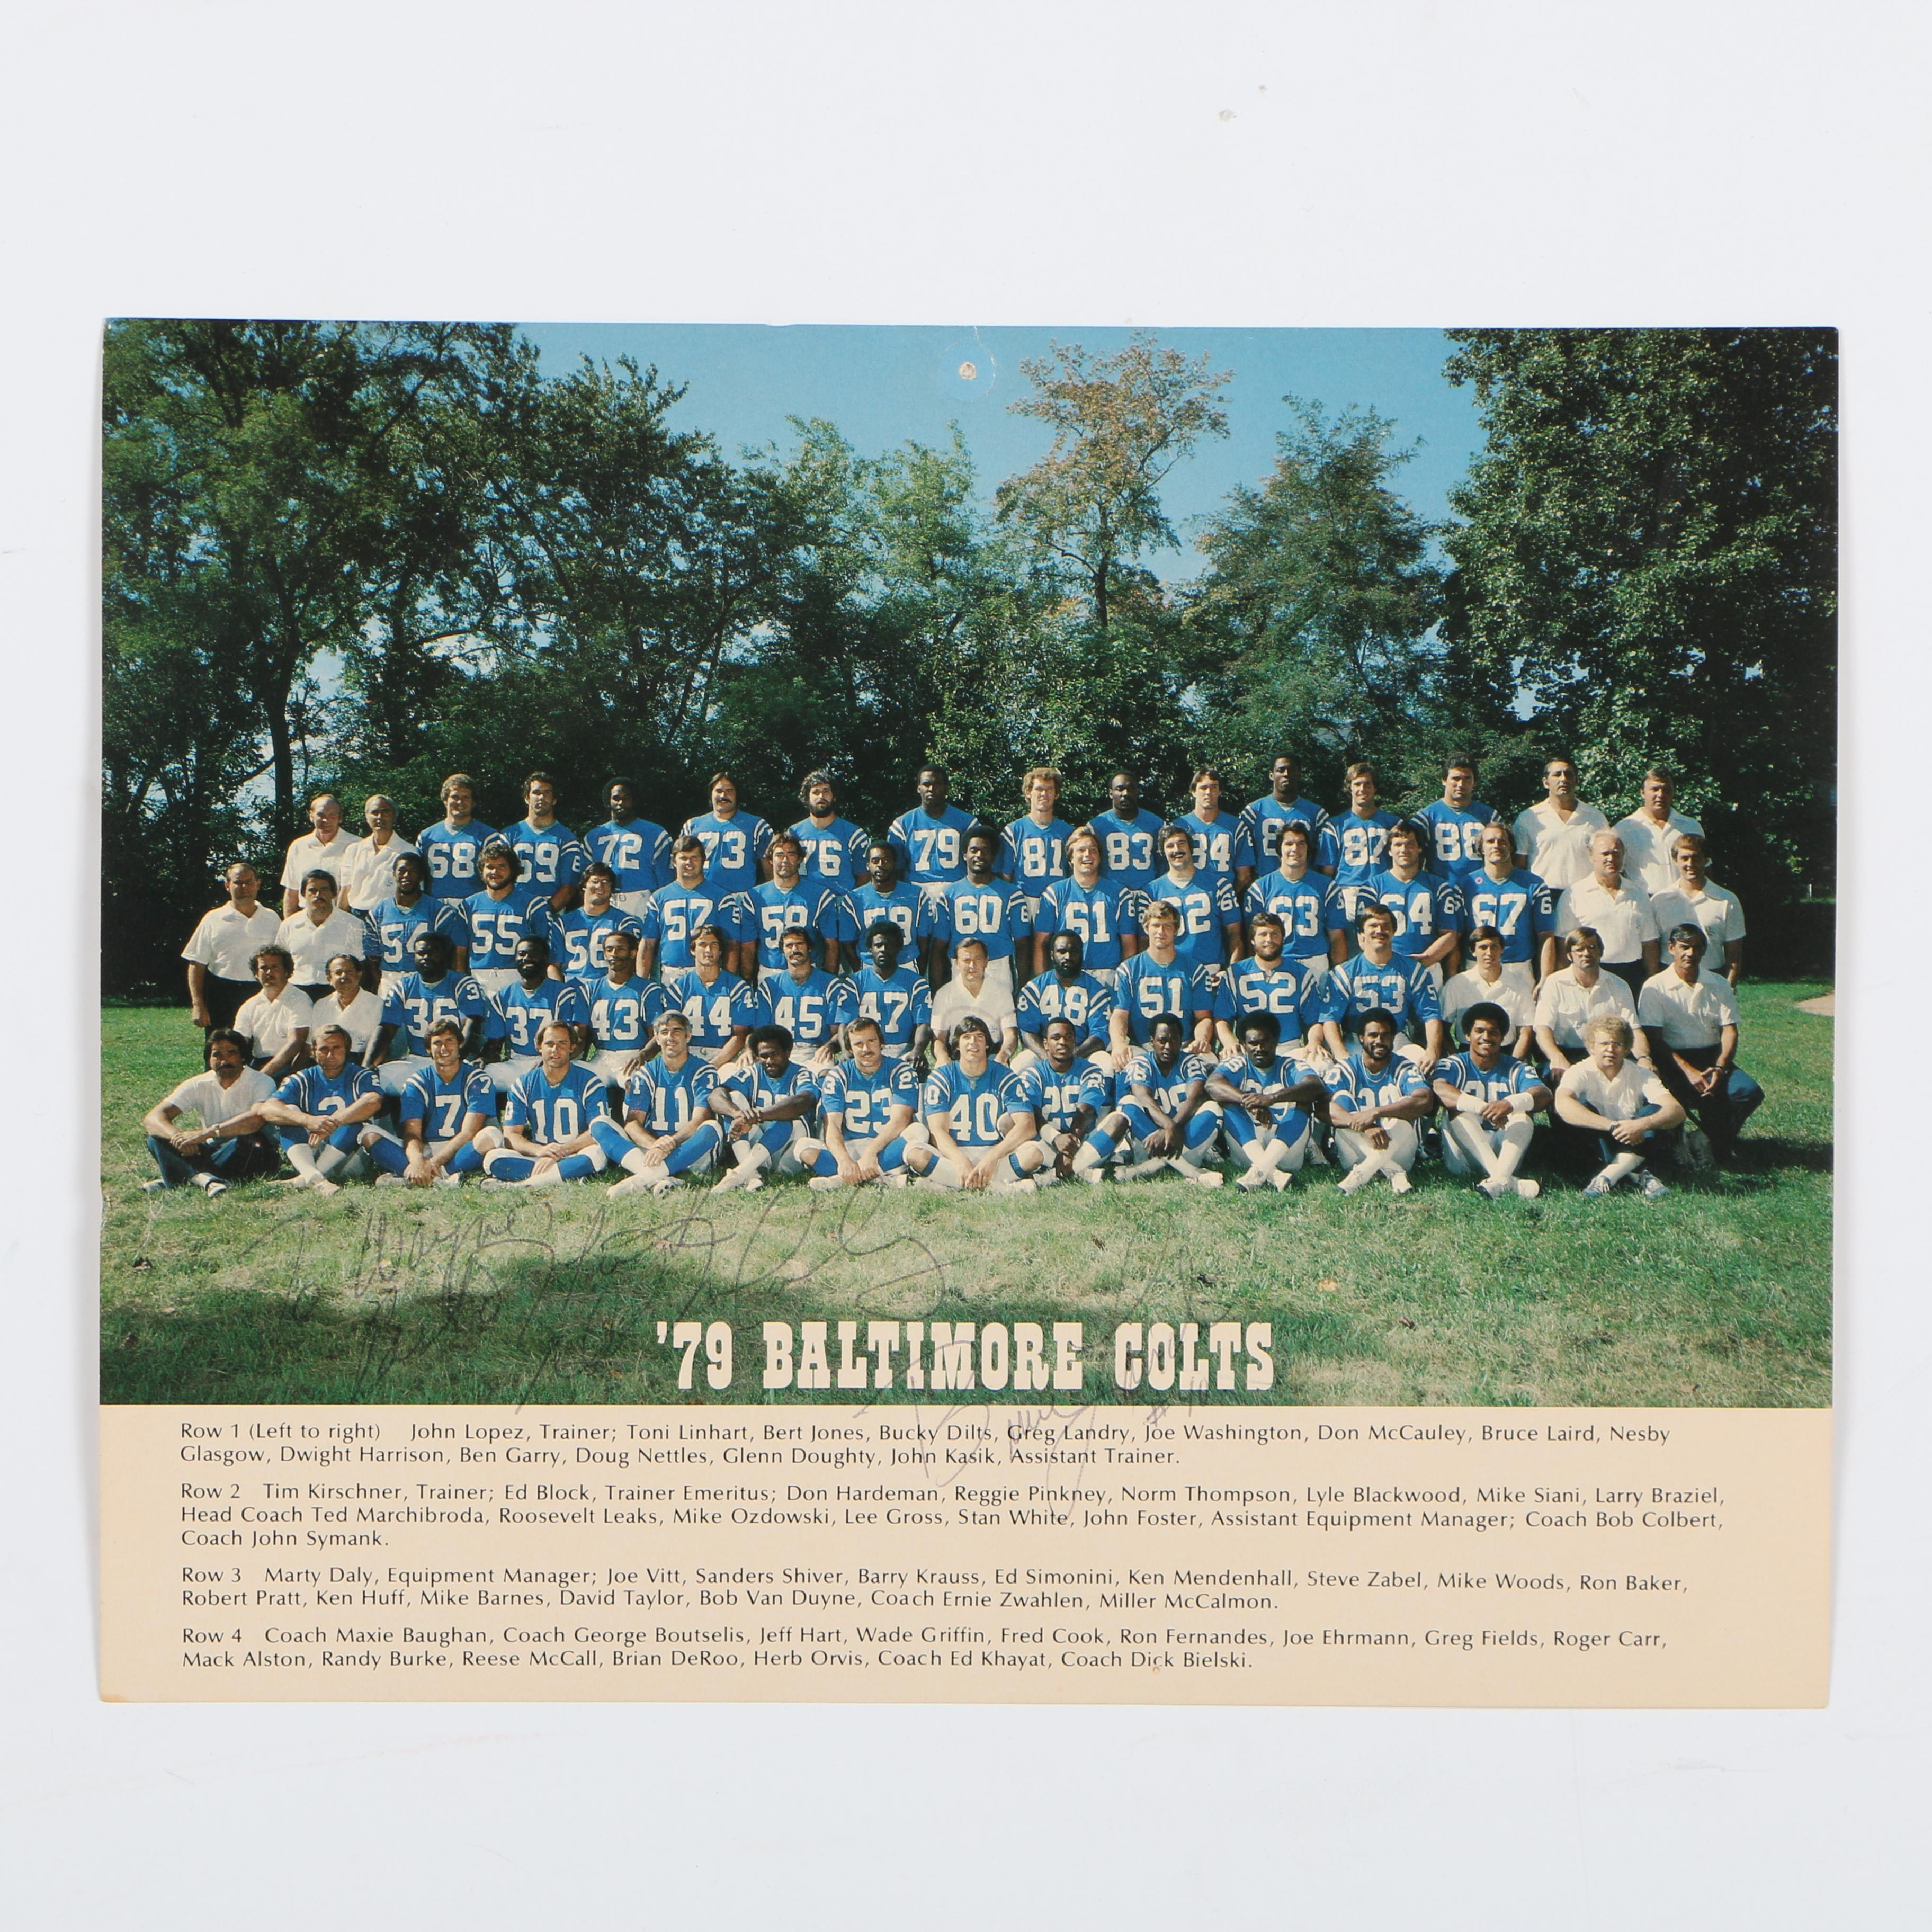 Baltimore Colts Team Photograph with Bruce Laird Signature, 1979